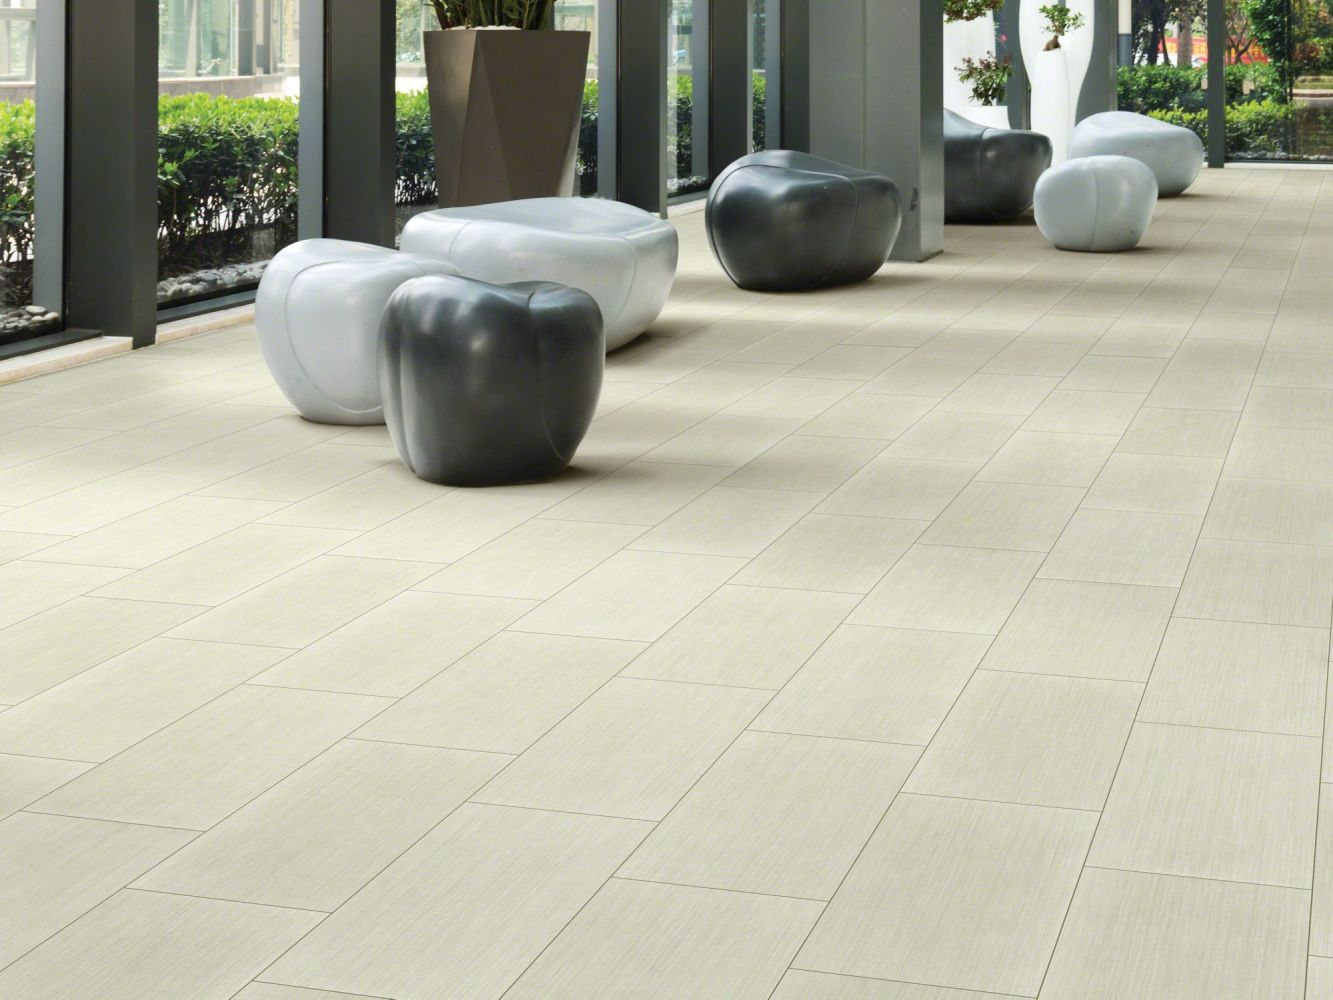 Shaw Floors Resilient Residential Set In Stone 720c Plus Arid 00162_0834V